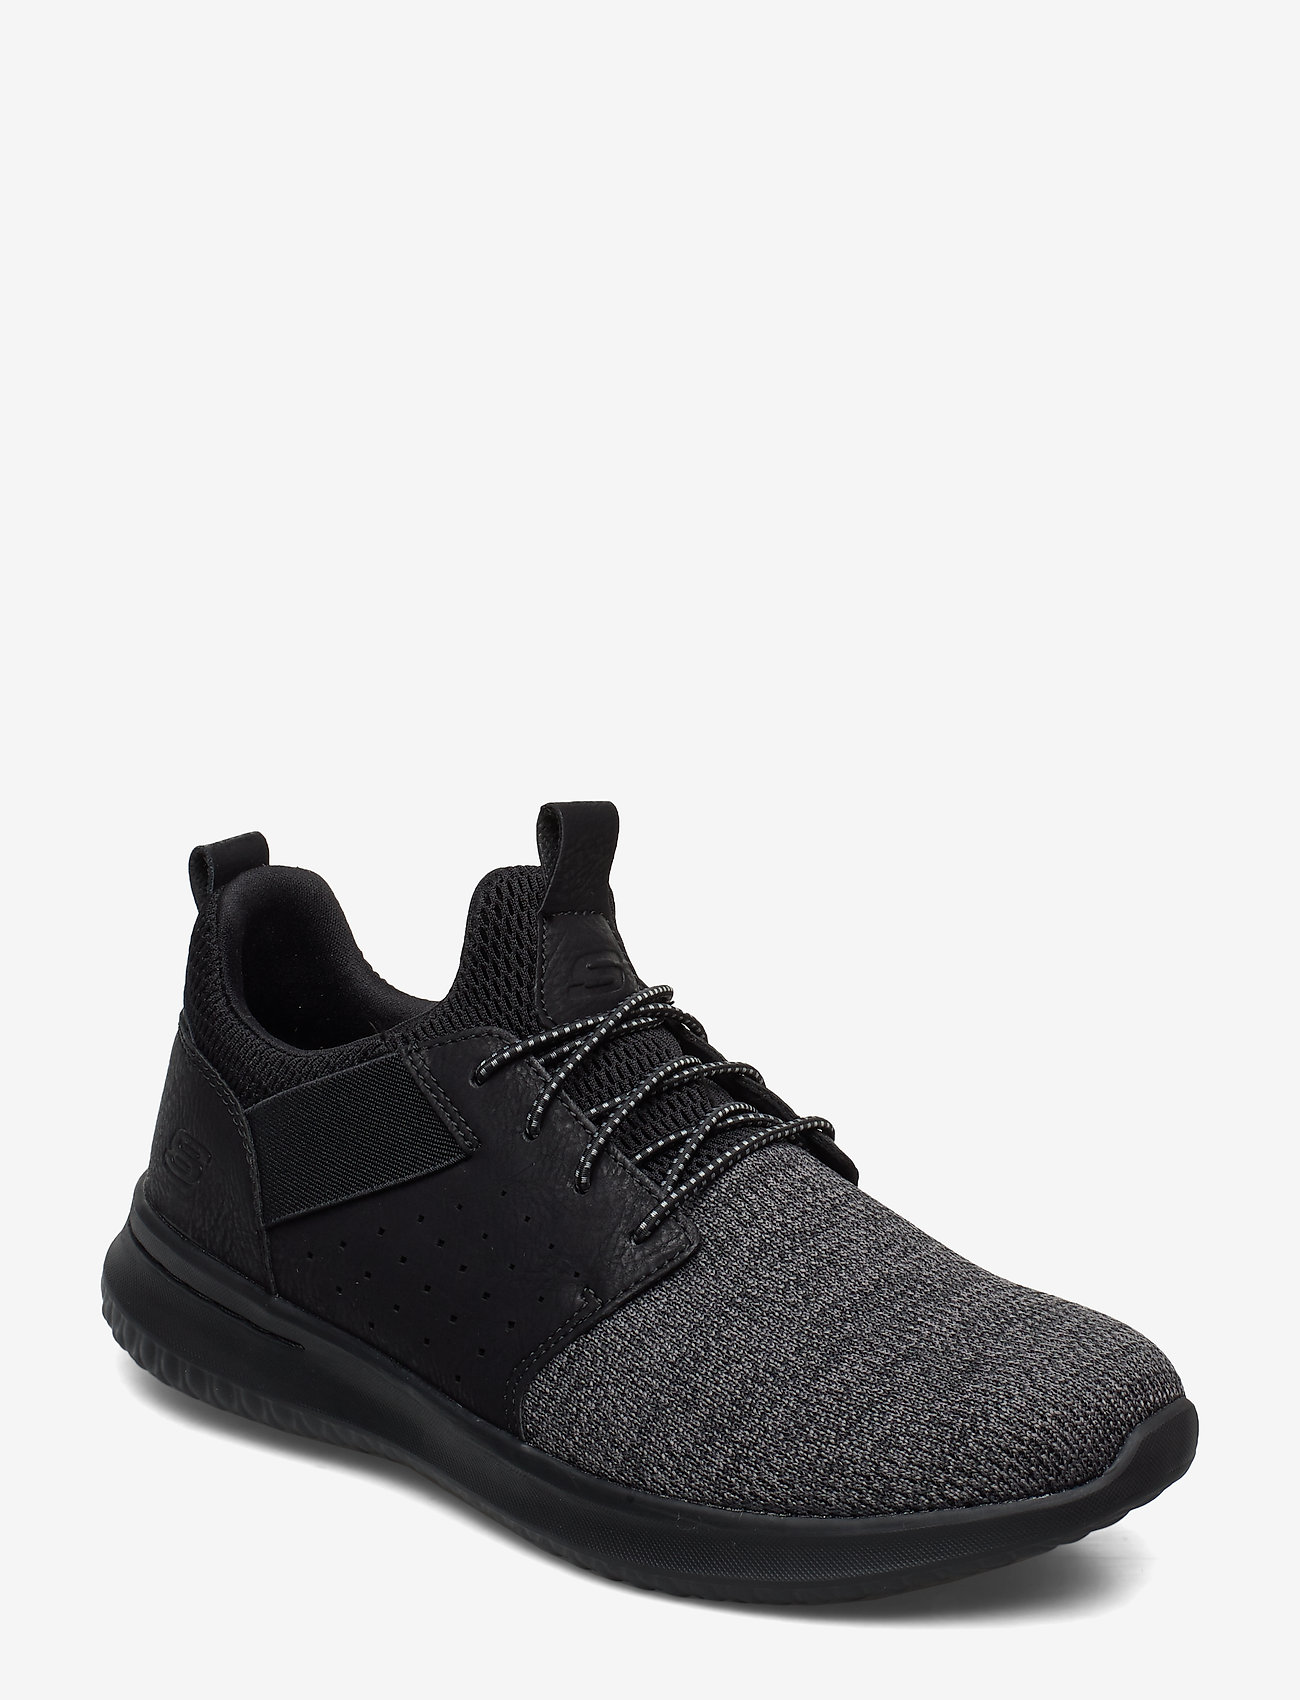 Skechers - Mens Delson - Camben - matalavartiset tennarit - bbk black - 0